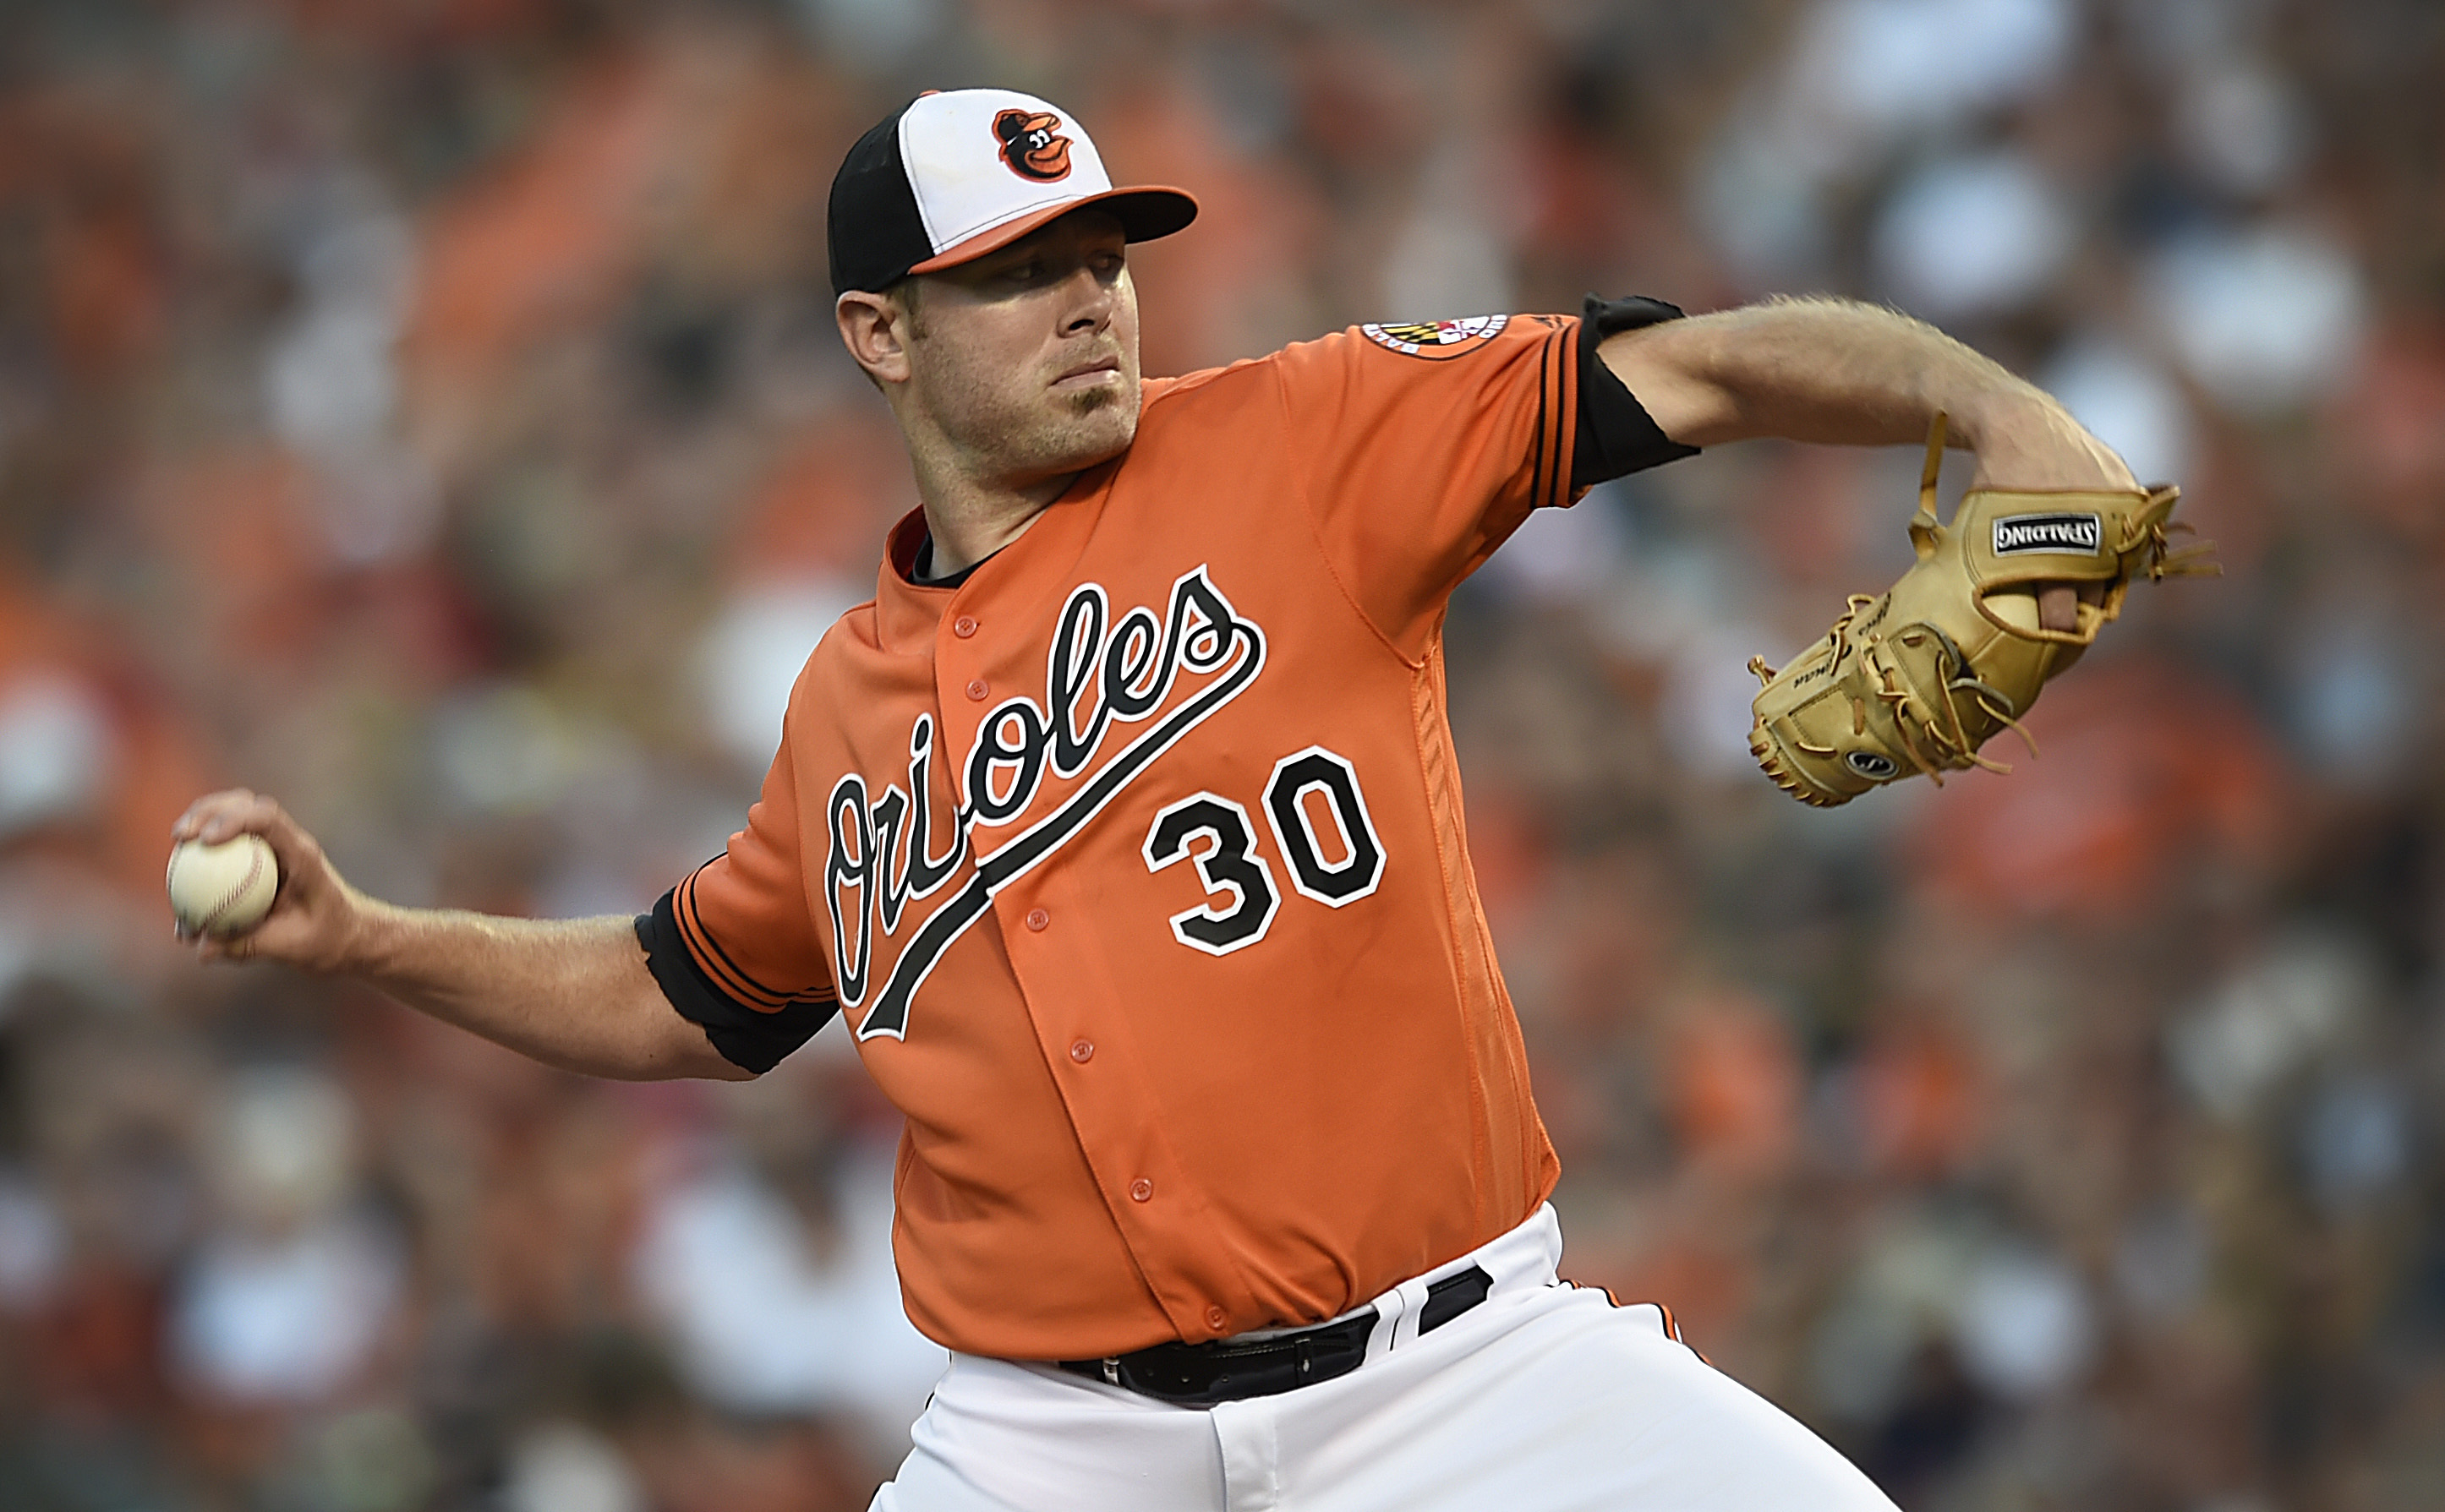 Baltimore Orioles pitcher Chris Tillman delivers against the Houston Astros in the first inning of a baseball game, Saturday, Aug. 20, 2016, in Baltimore. (AP Photo/Gail Burton)